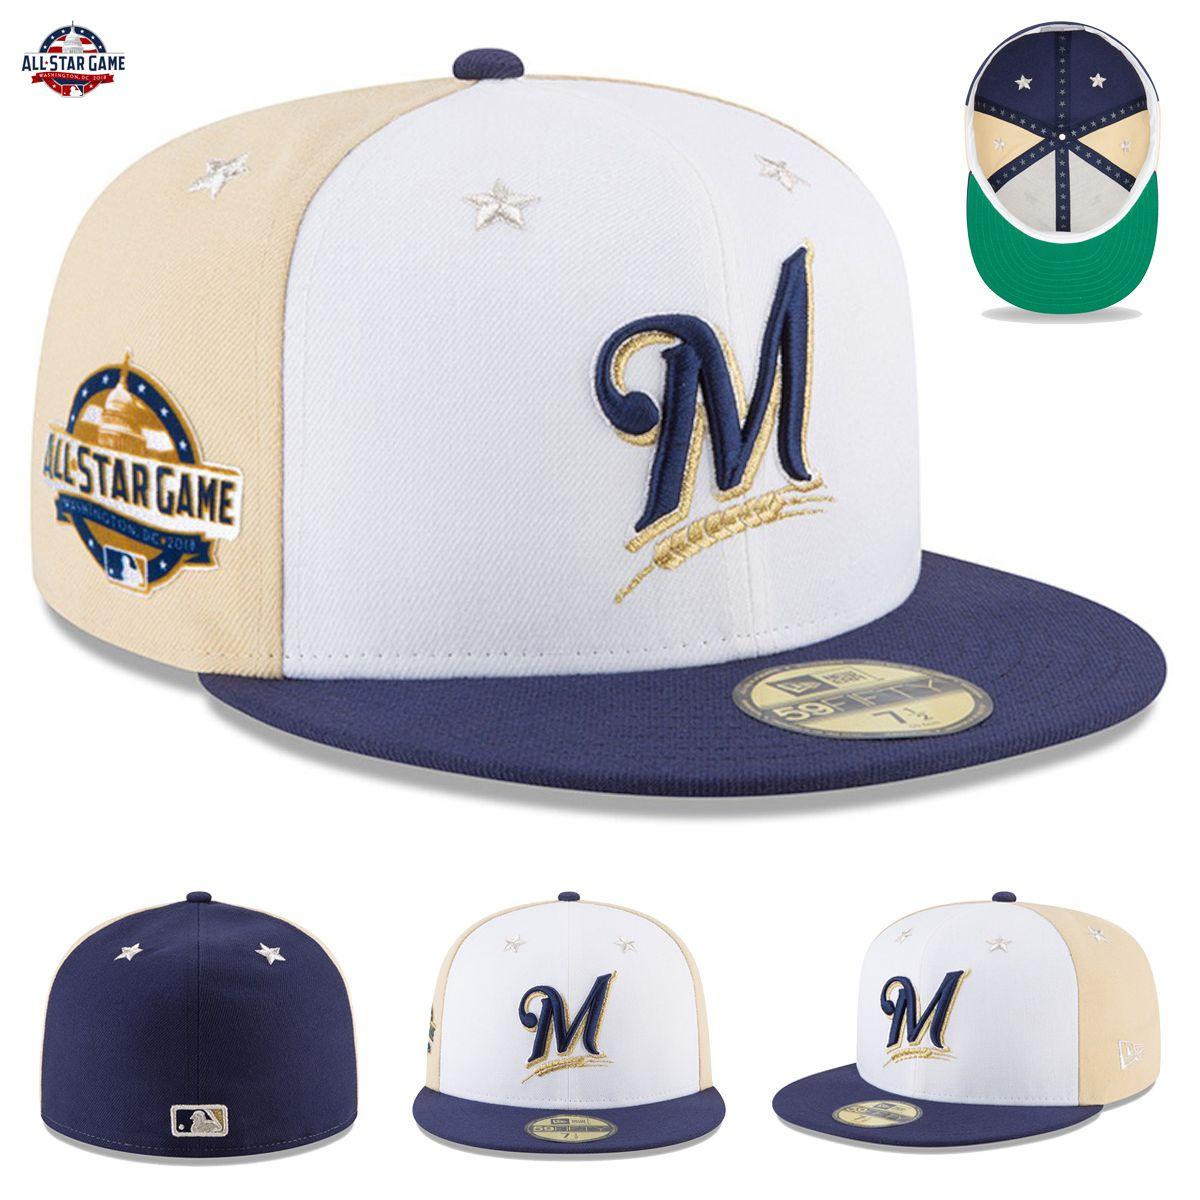 Milwaukee Brewers New Era 2018 MLB All-Star Game Hat Cap On-Field 59FIFTY  Fitted Each year you look forward to MLB All-Star Week and seeing all your  ... 223a4edc96f